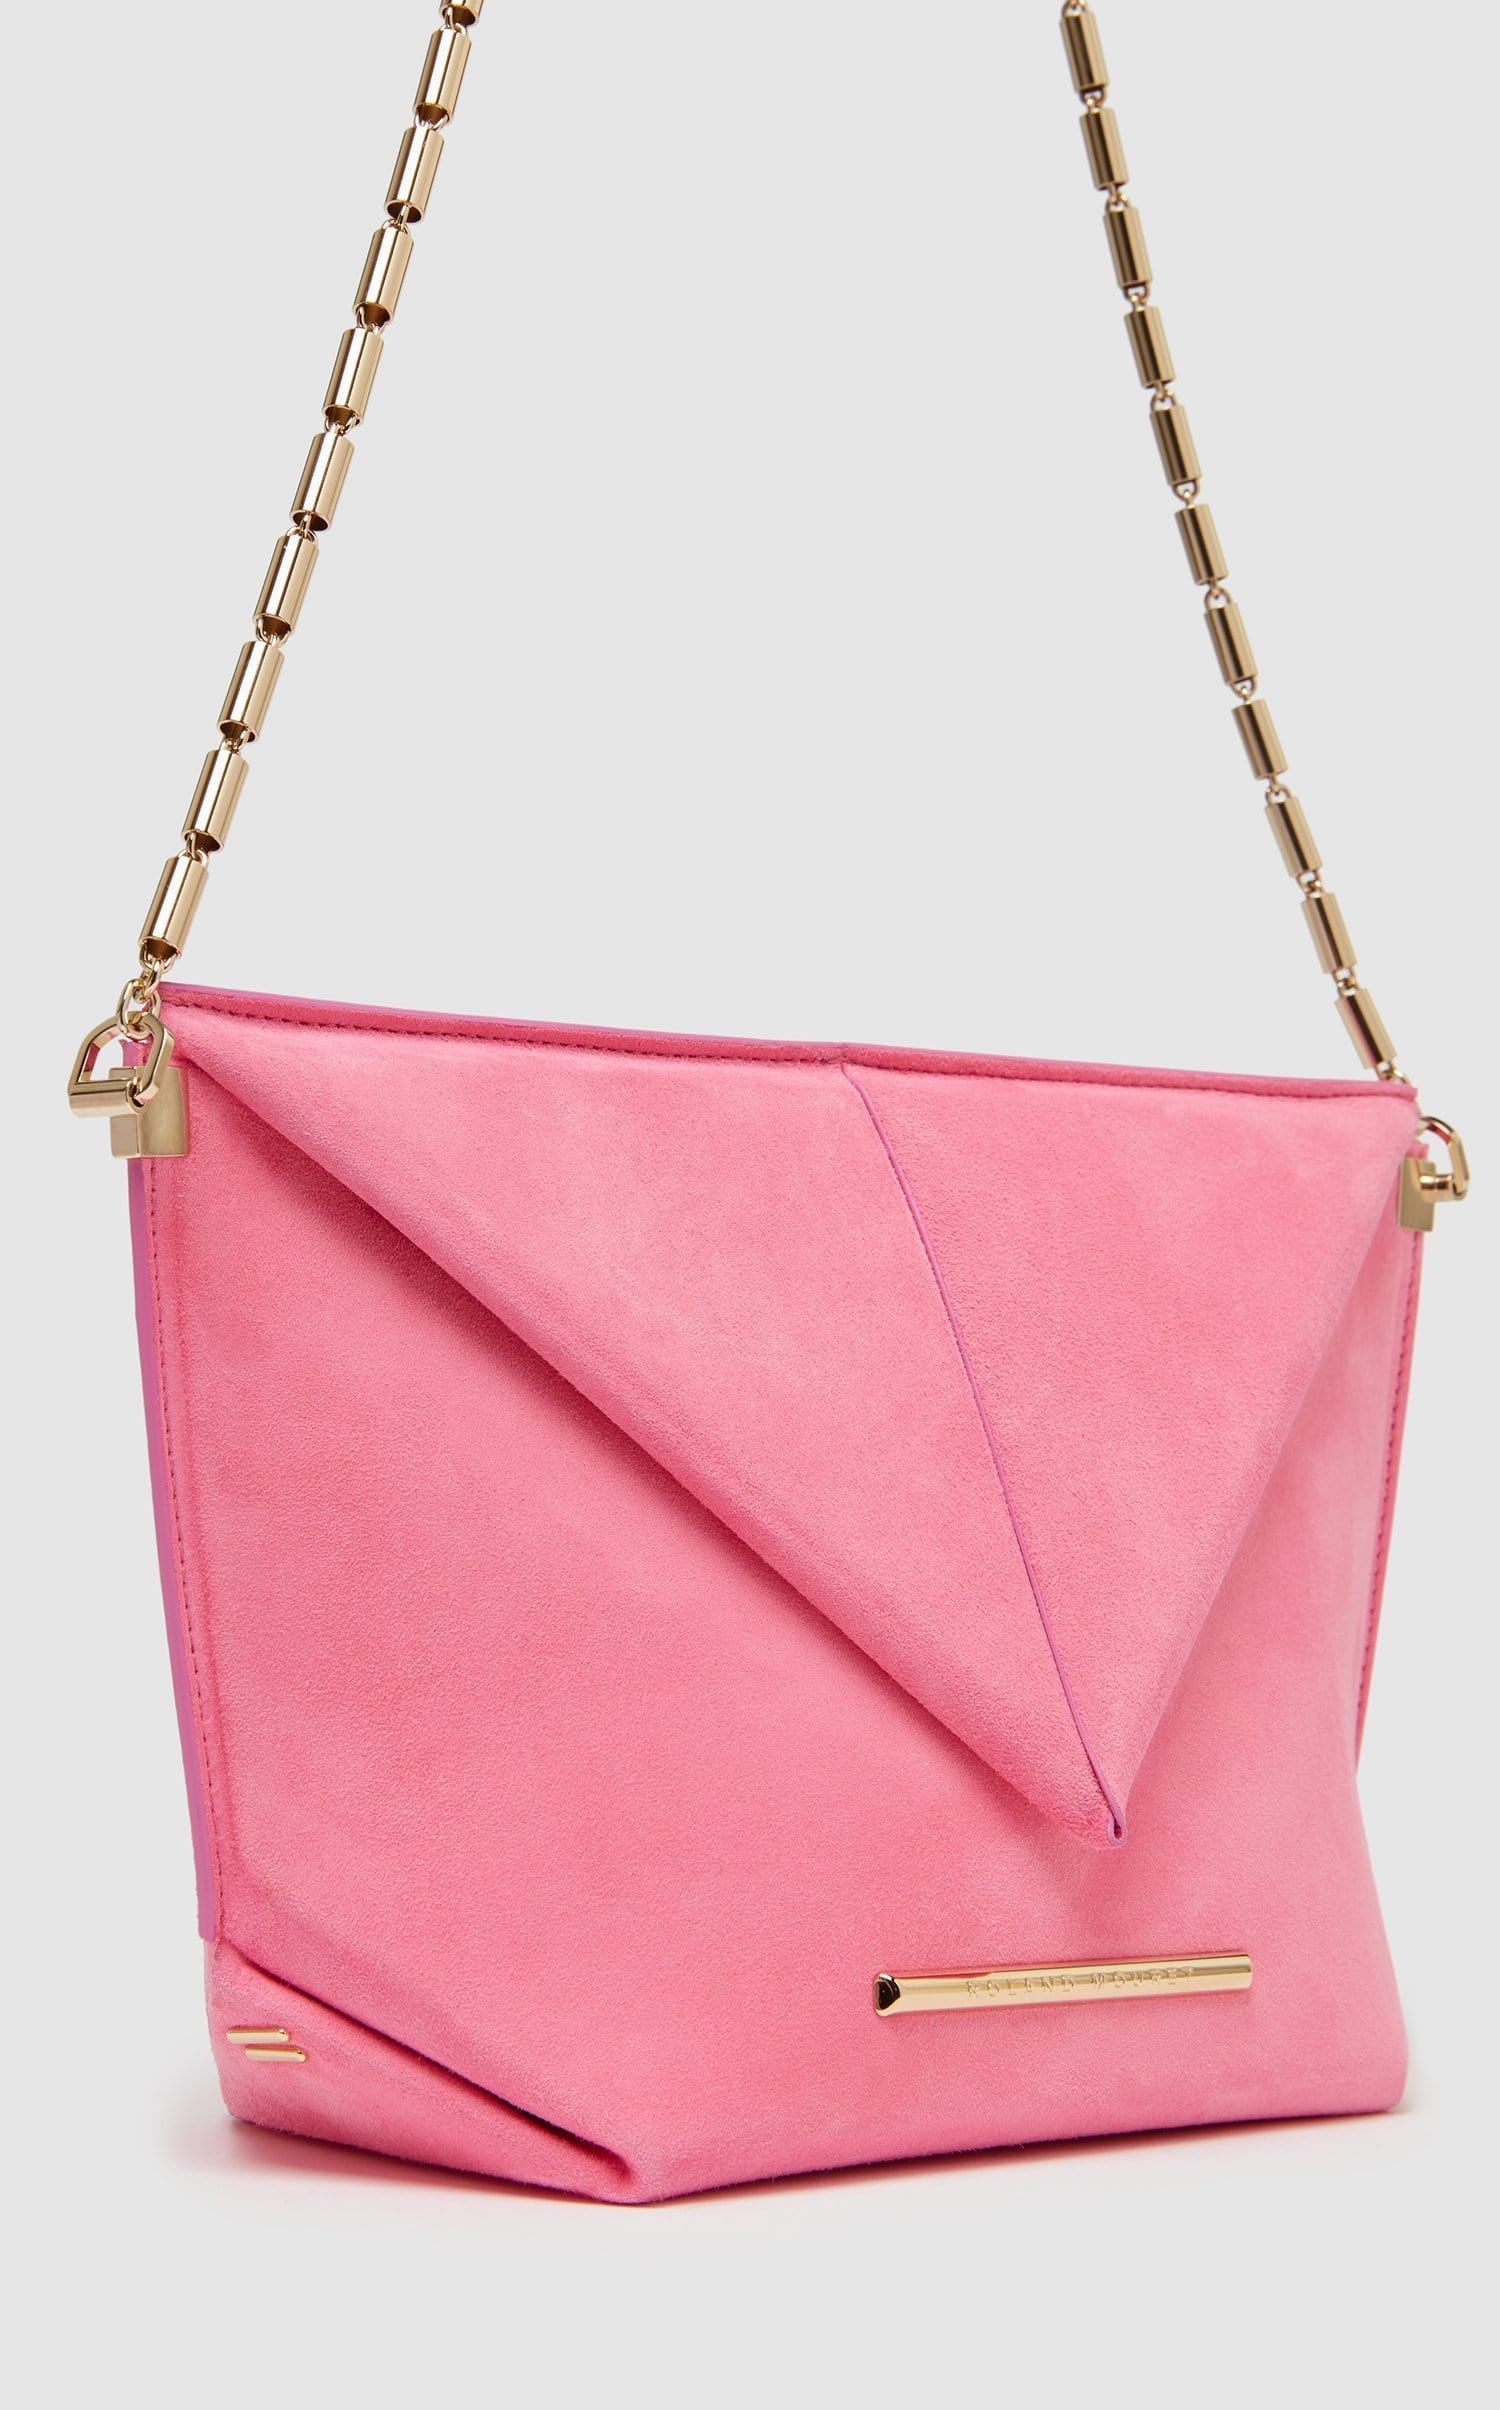 Classico Bag In Candy pink from Roland Mouret